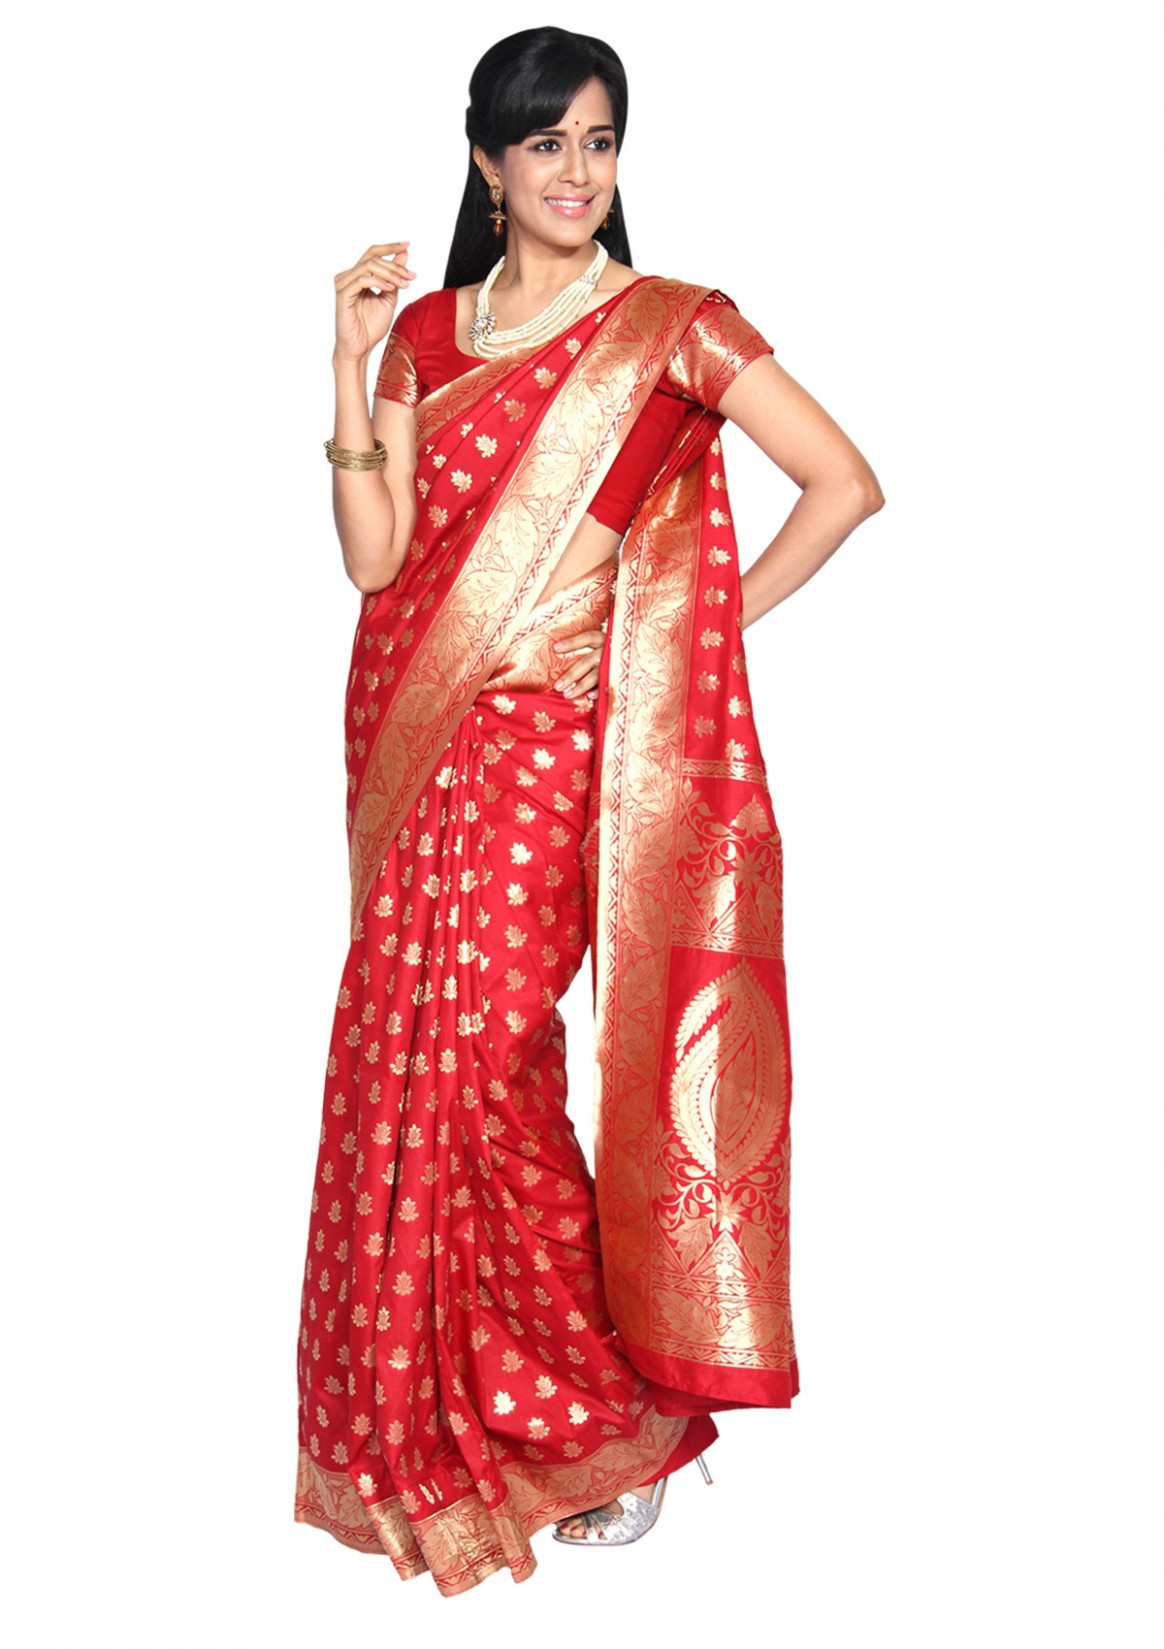 Arundathi Red Banarasi Silk Saree